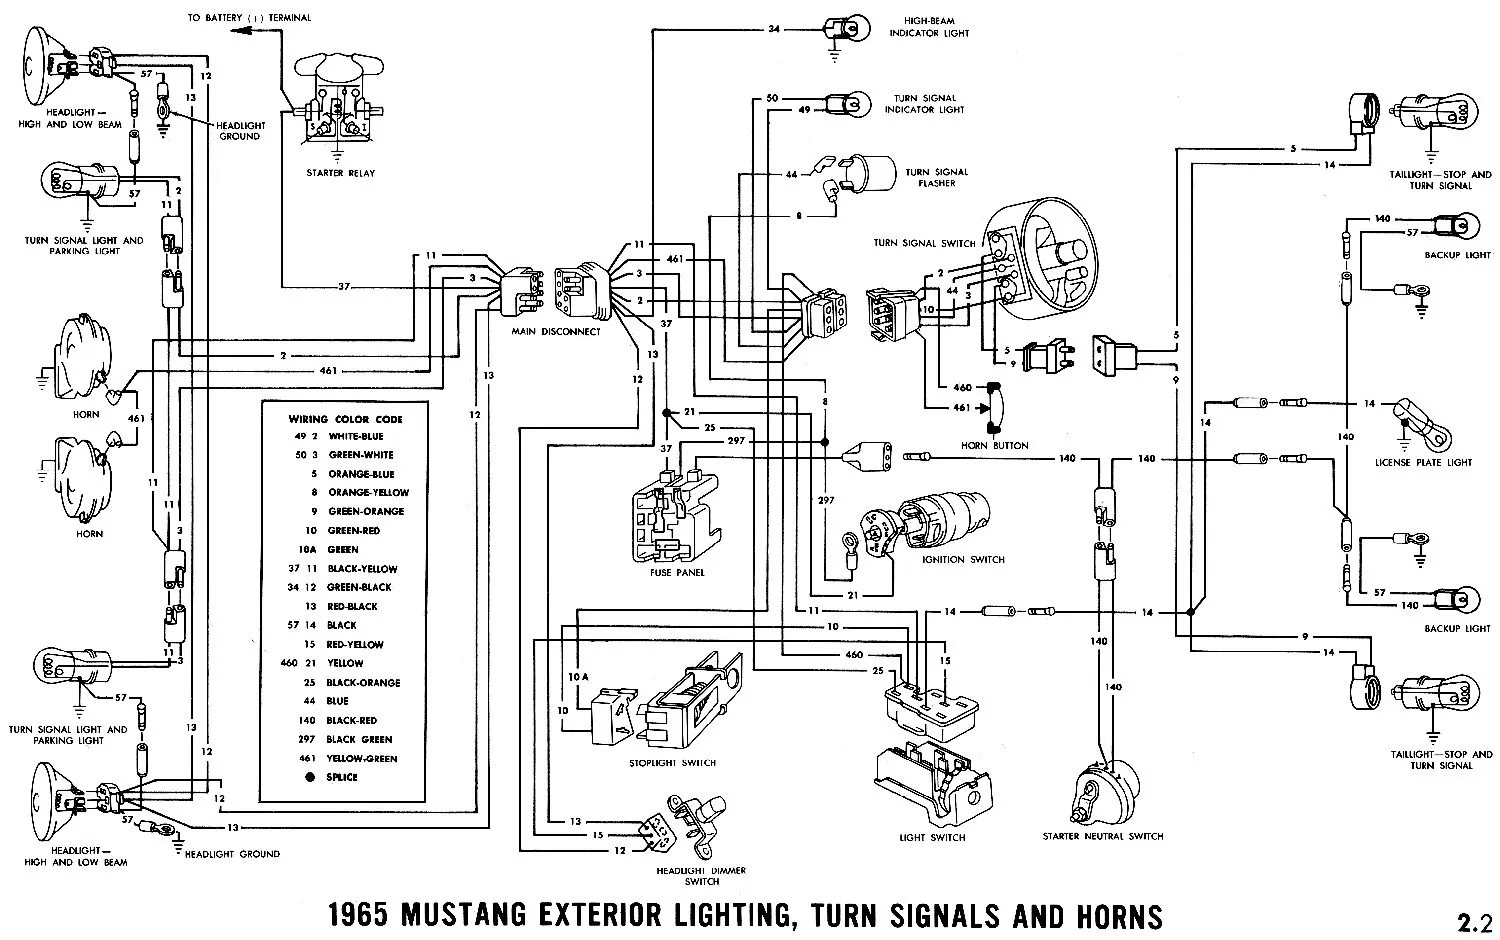 hight resolution of 1965 mustang heater wiring free wiring diagram for you u2022 1996 ford mustang heater hose diagram 1965 mustang heater wiring diagram